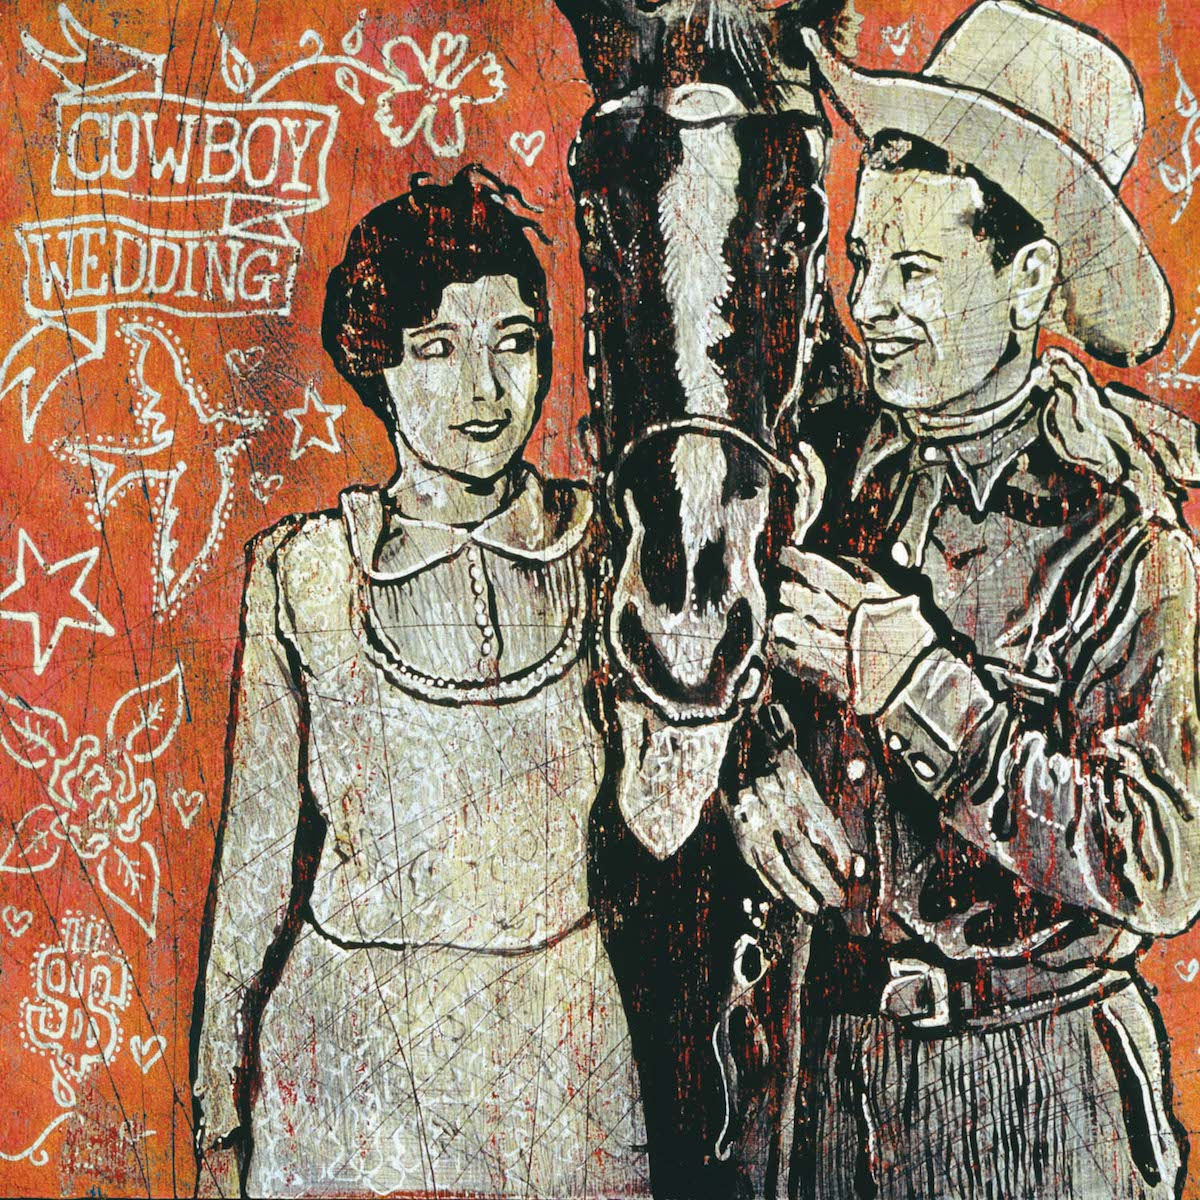 Cowboy Wedding - Jon Langford - Yard Dog Art